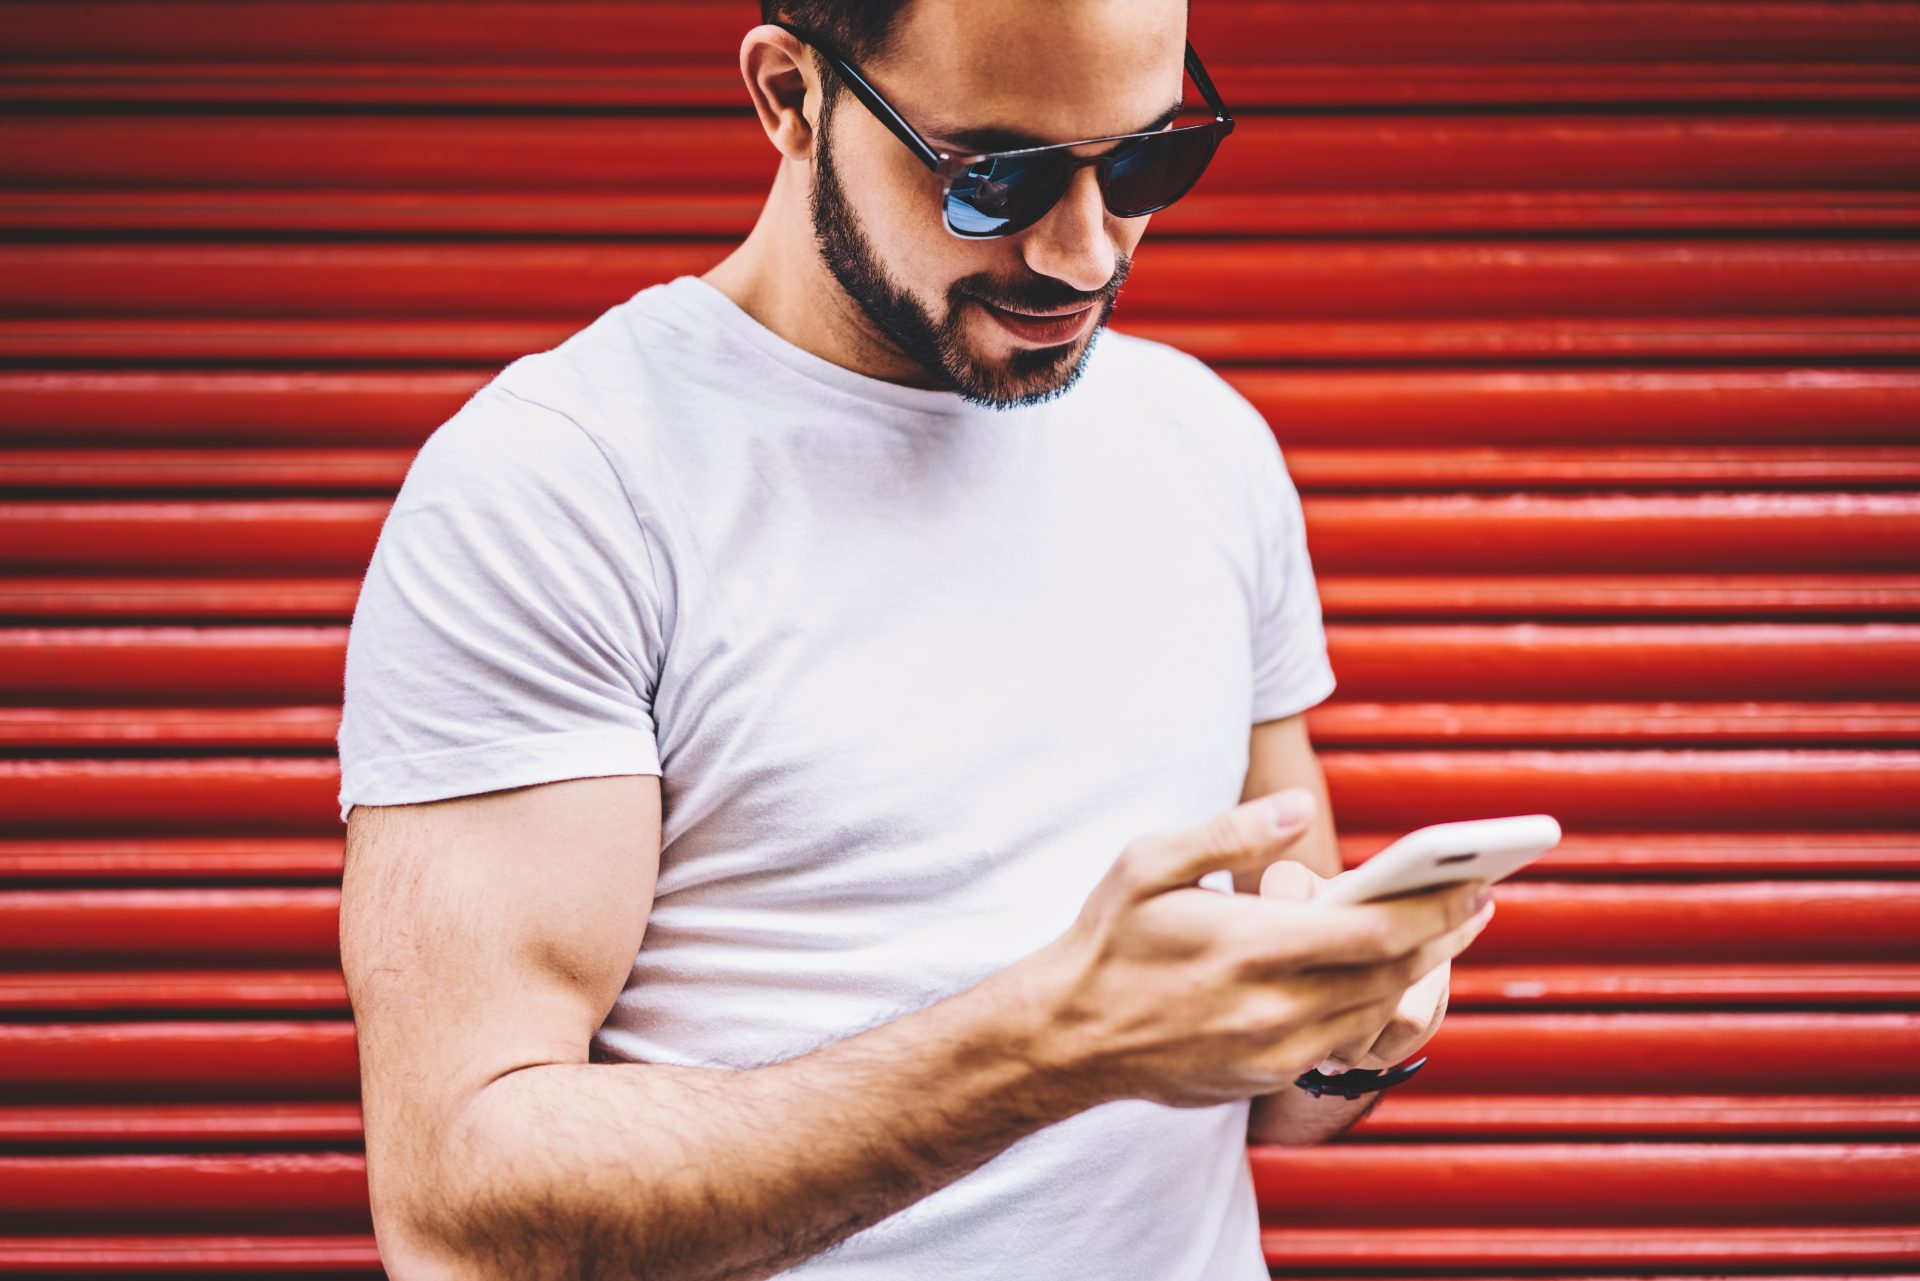 Young man in sunglasses looking at smartphone against red background